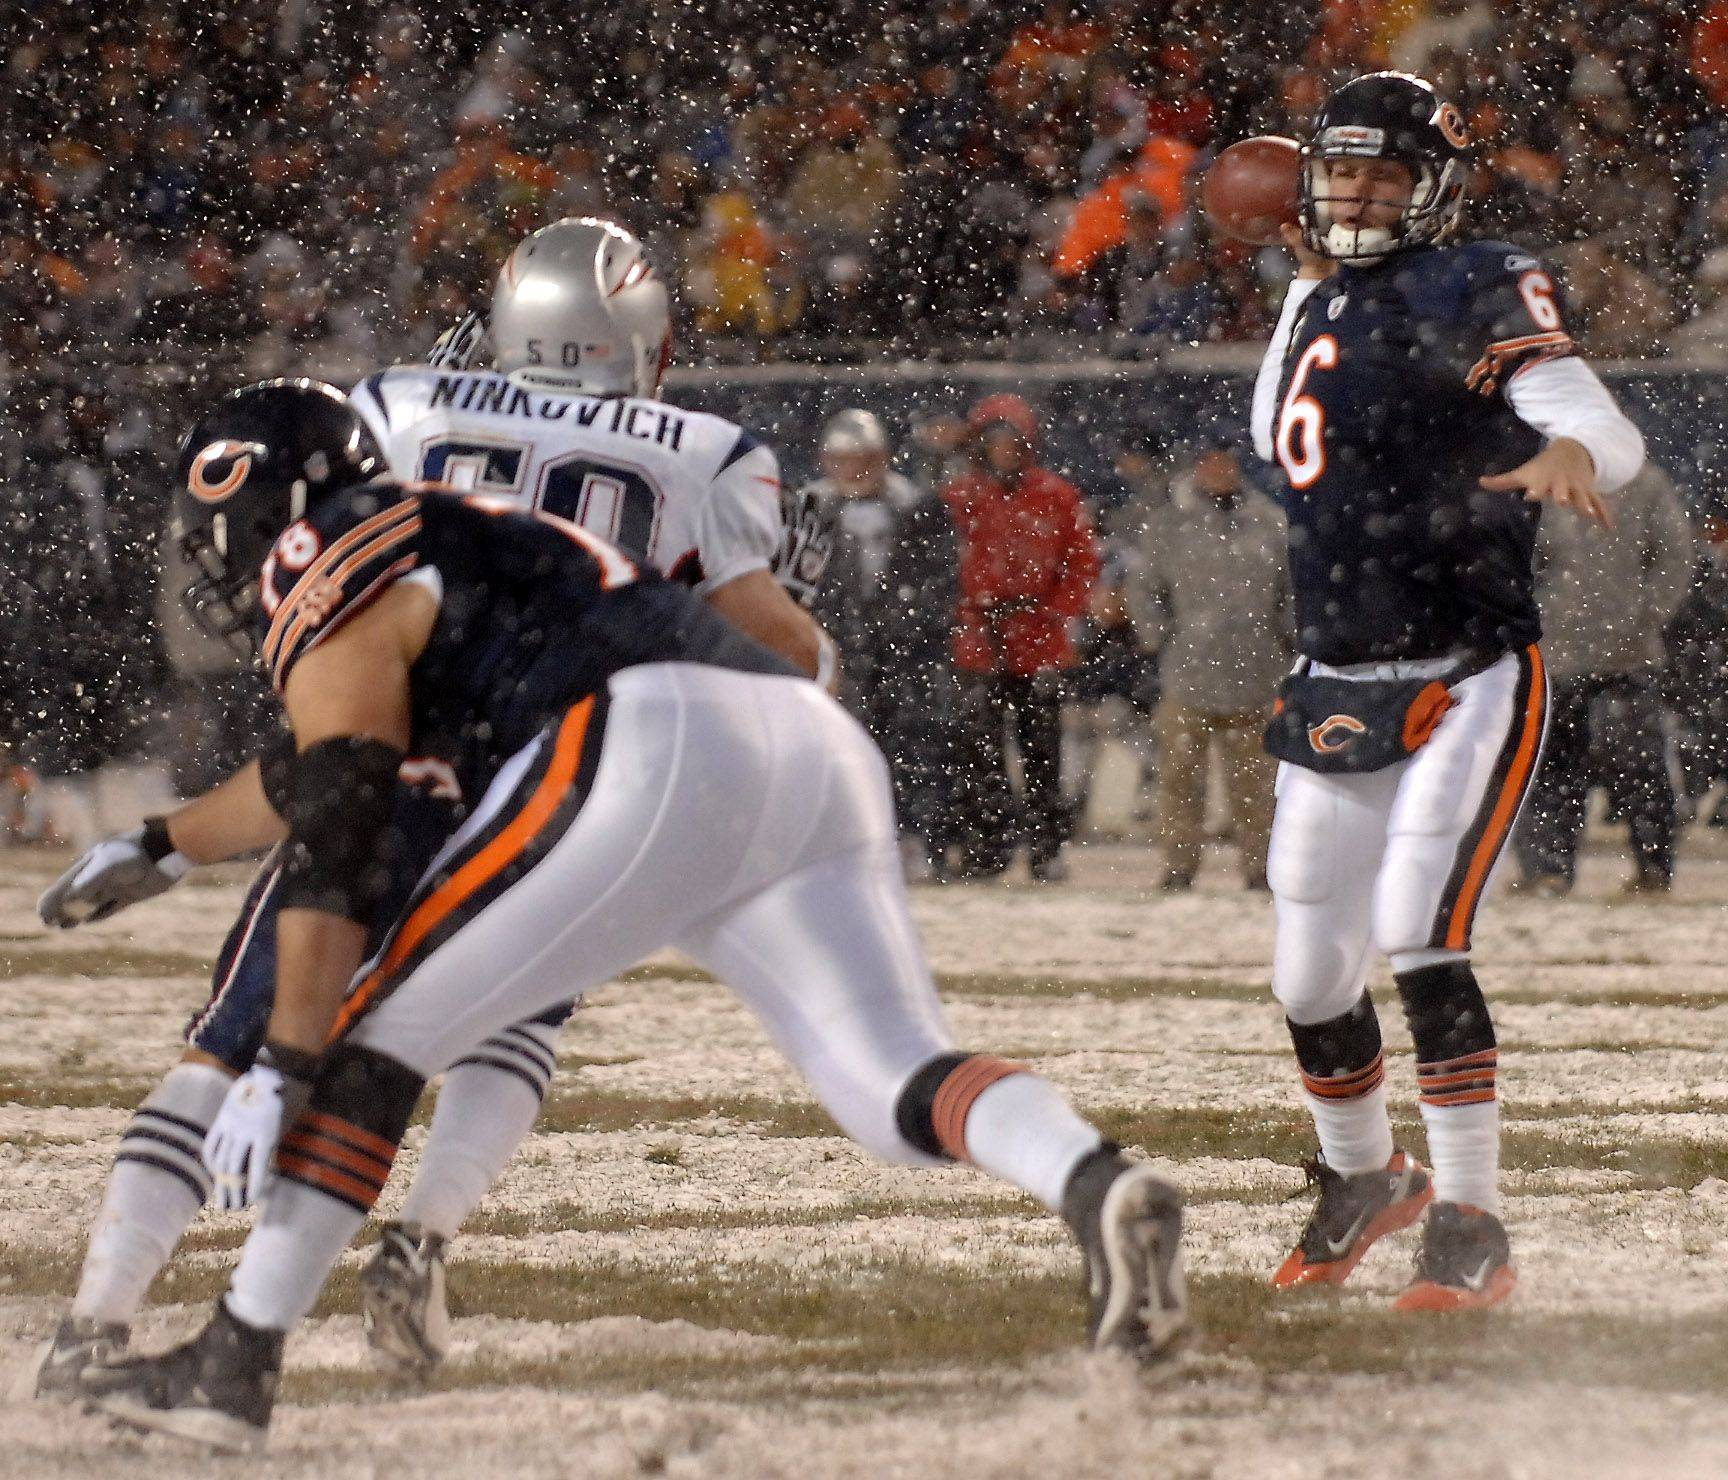 Chicago Bears quarterback Jay Cutler looks for a receiver.